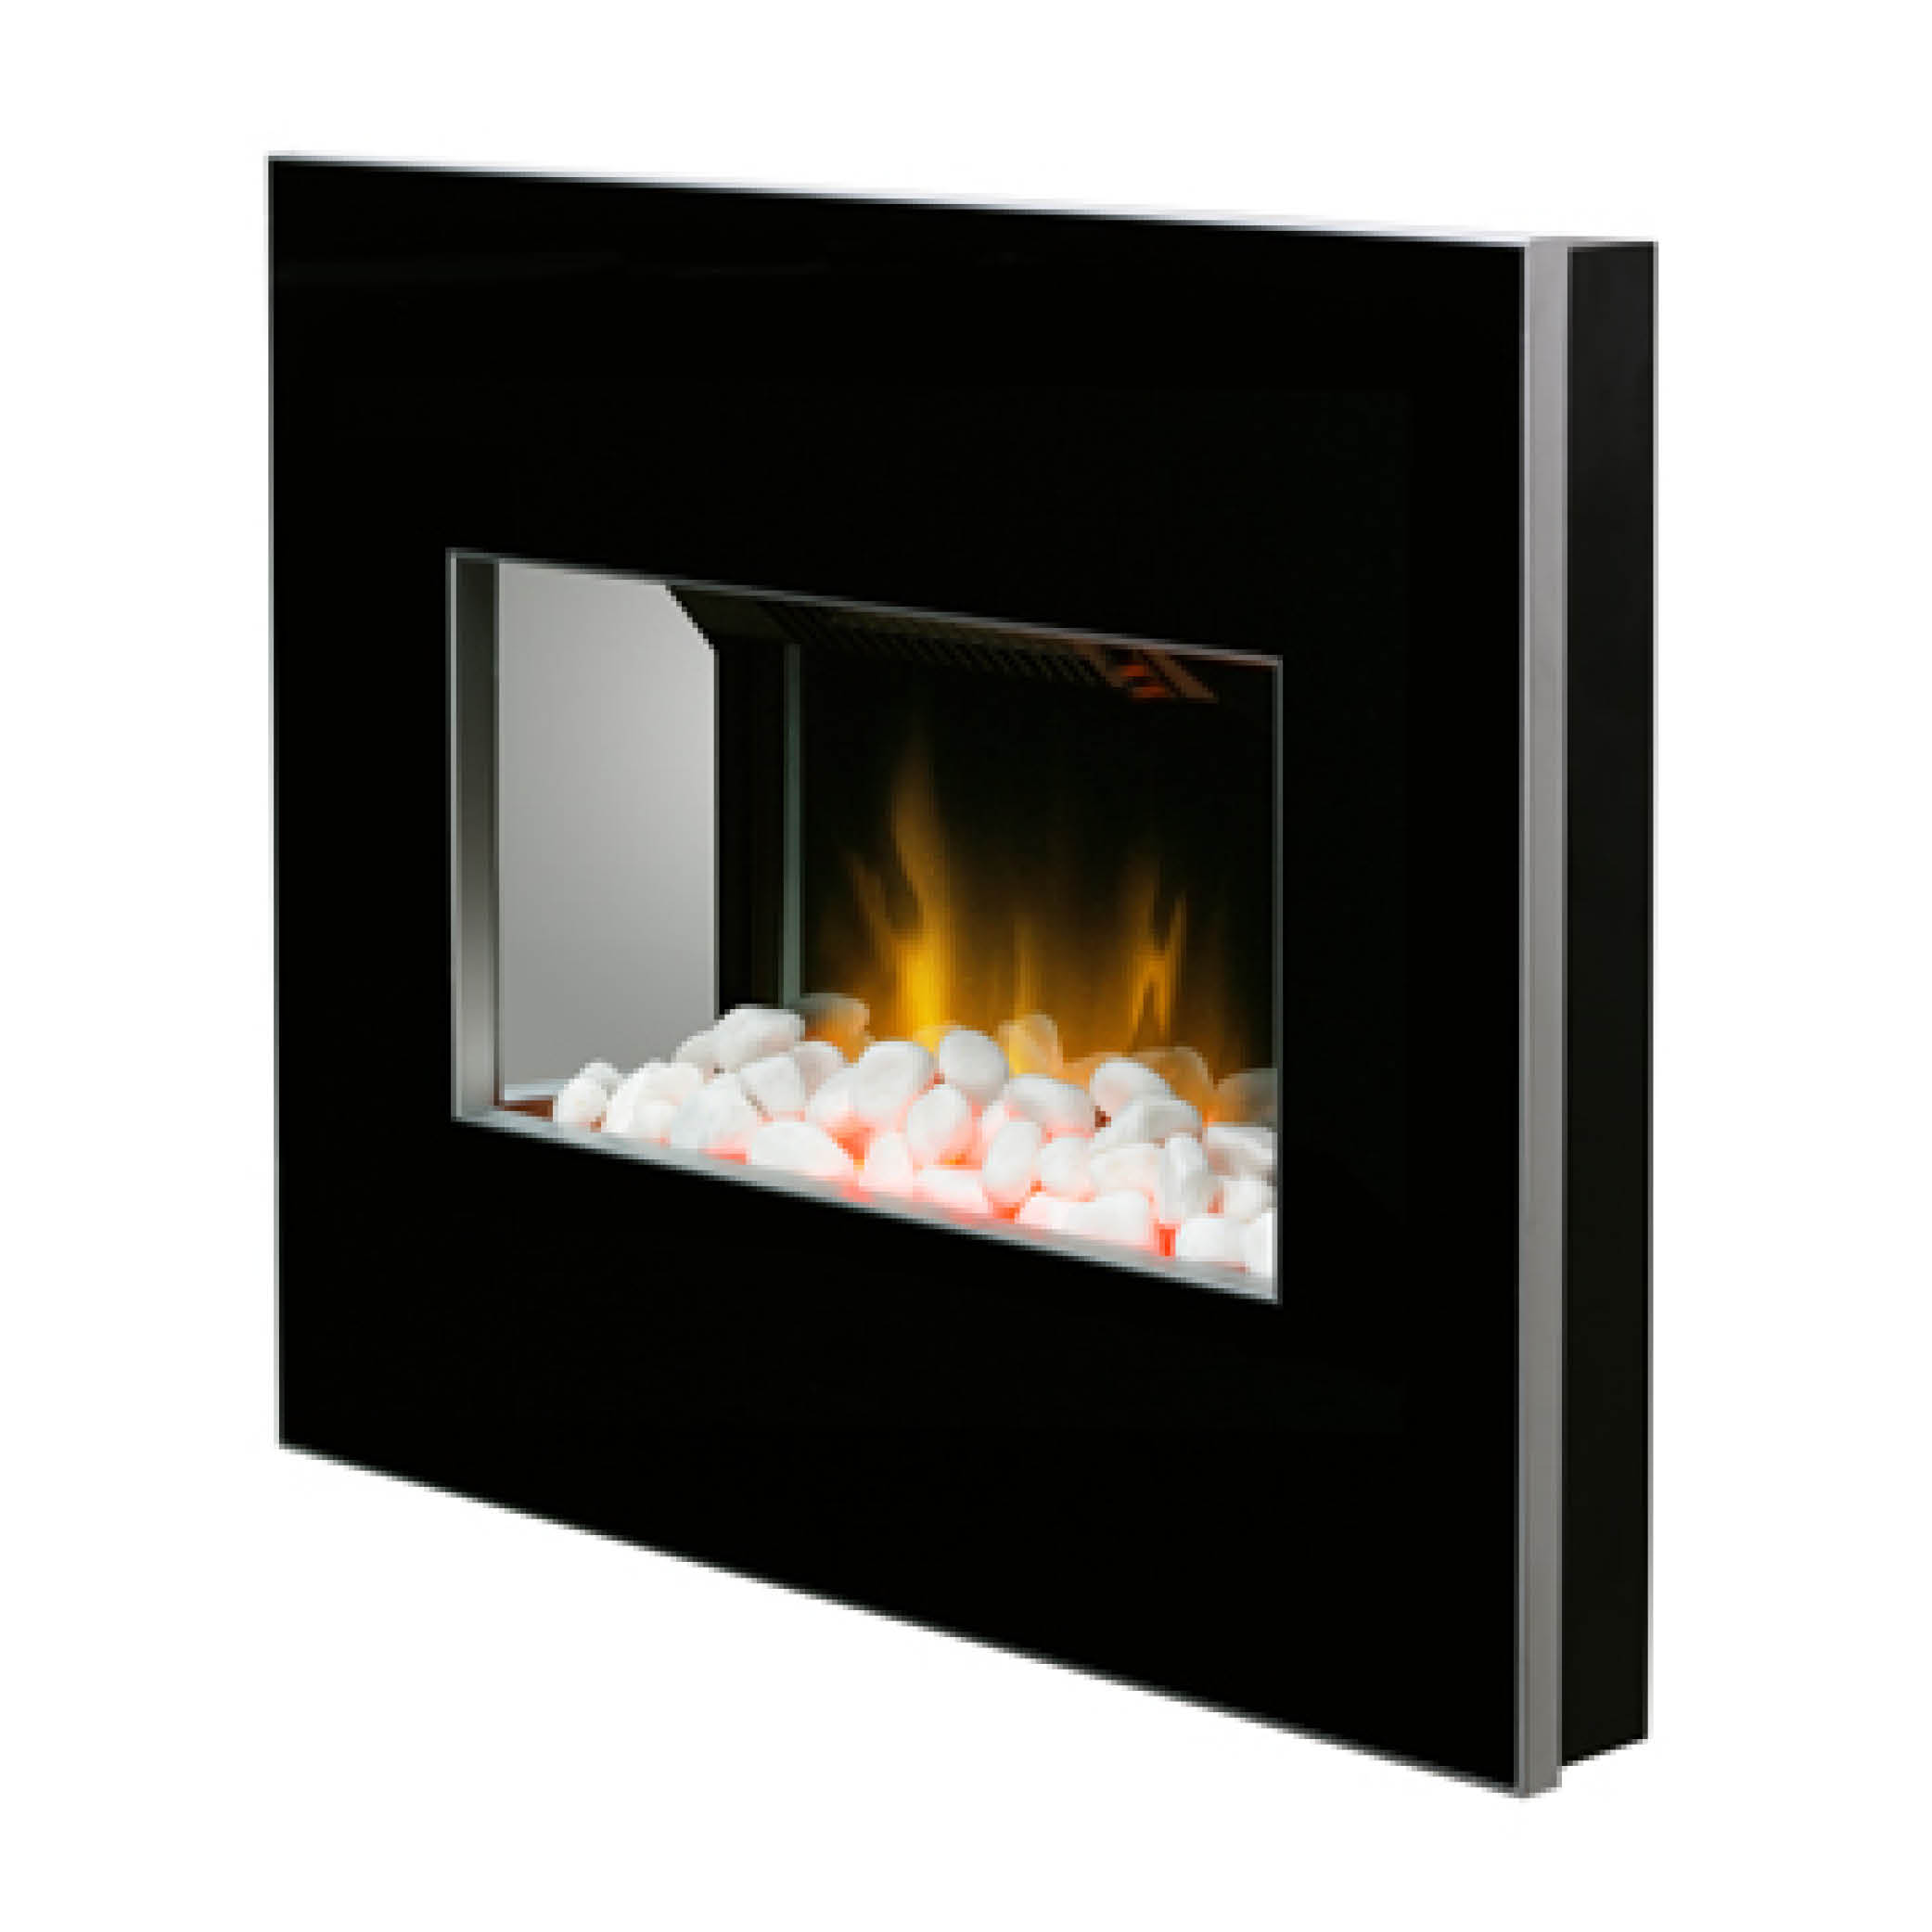 Clova Black White 2kW Wall Mounted Electric Fire Model